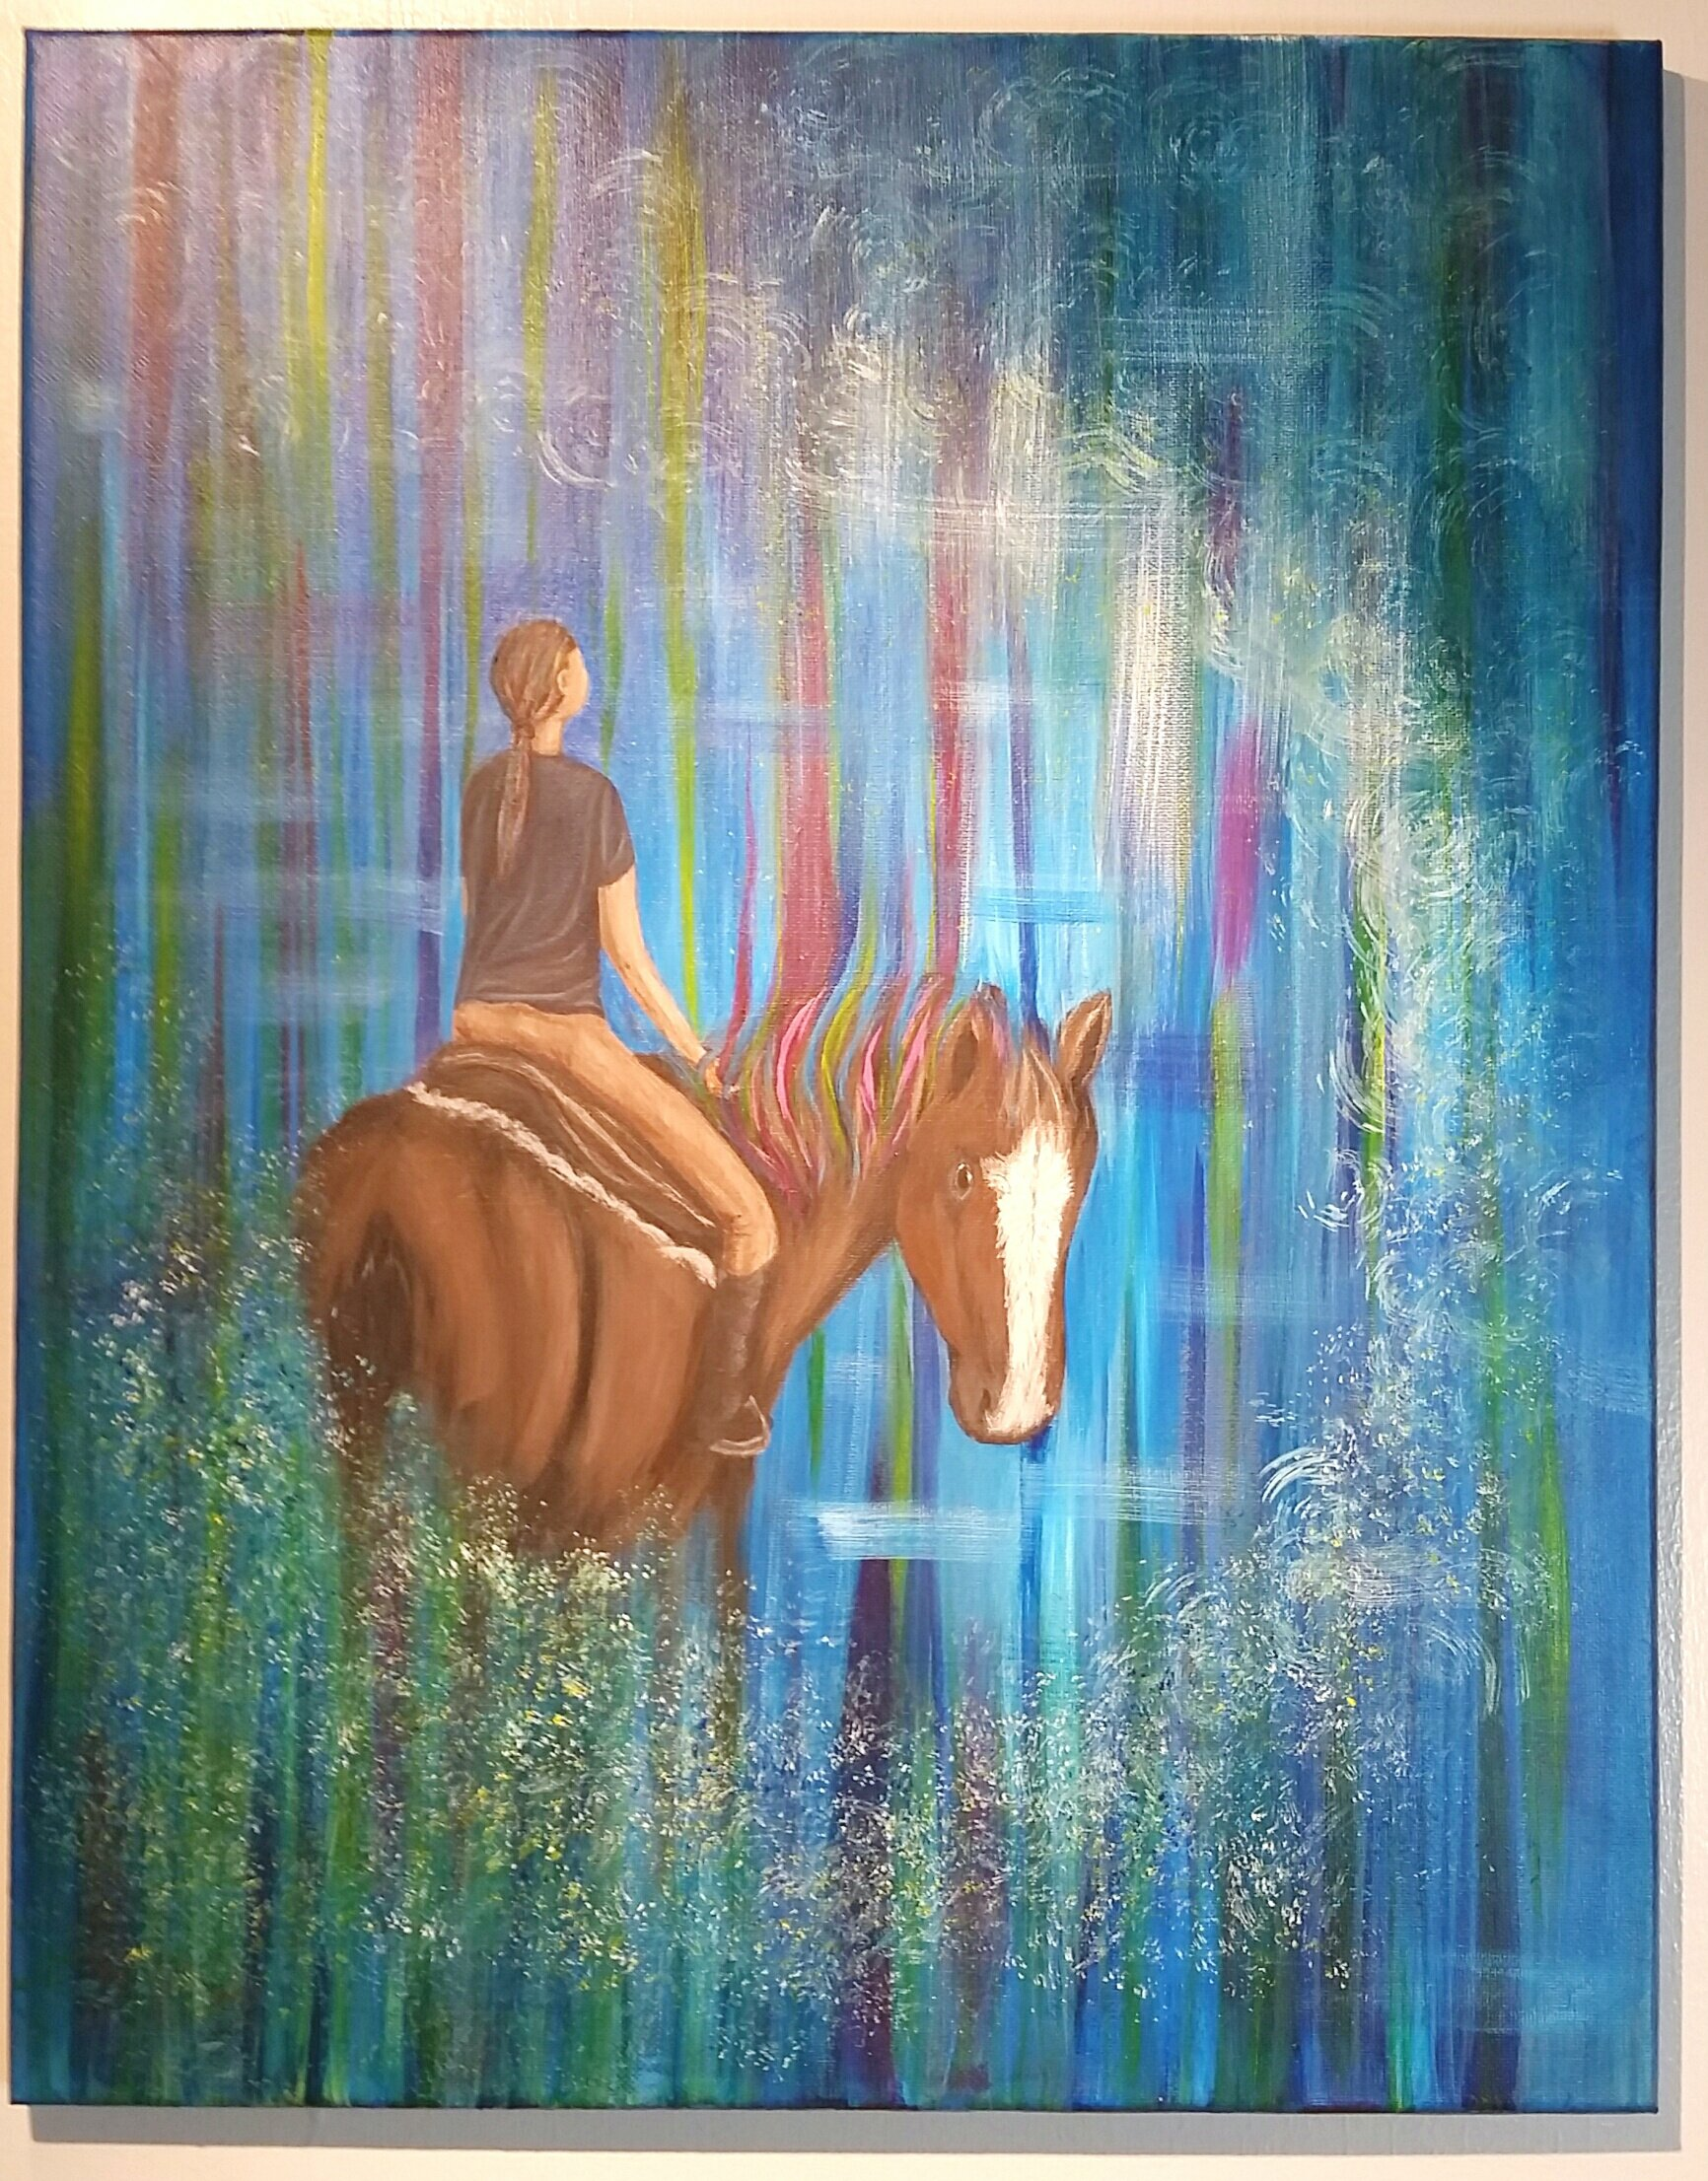 https://0201.nccdn.net/4_2/000/000/017/e75/Dream-horse-painting-1732x2212.jpg